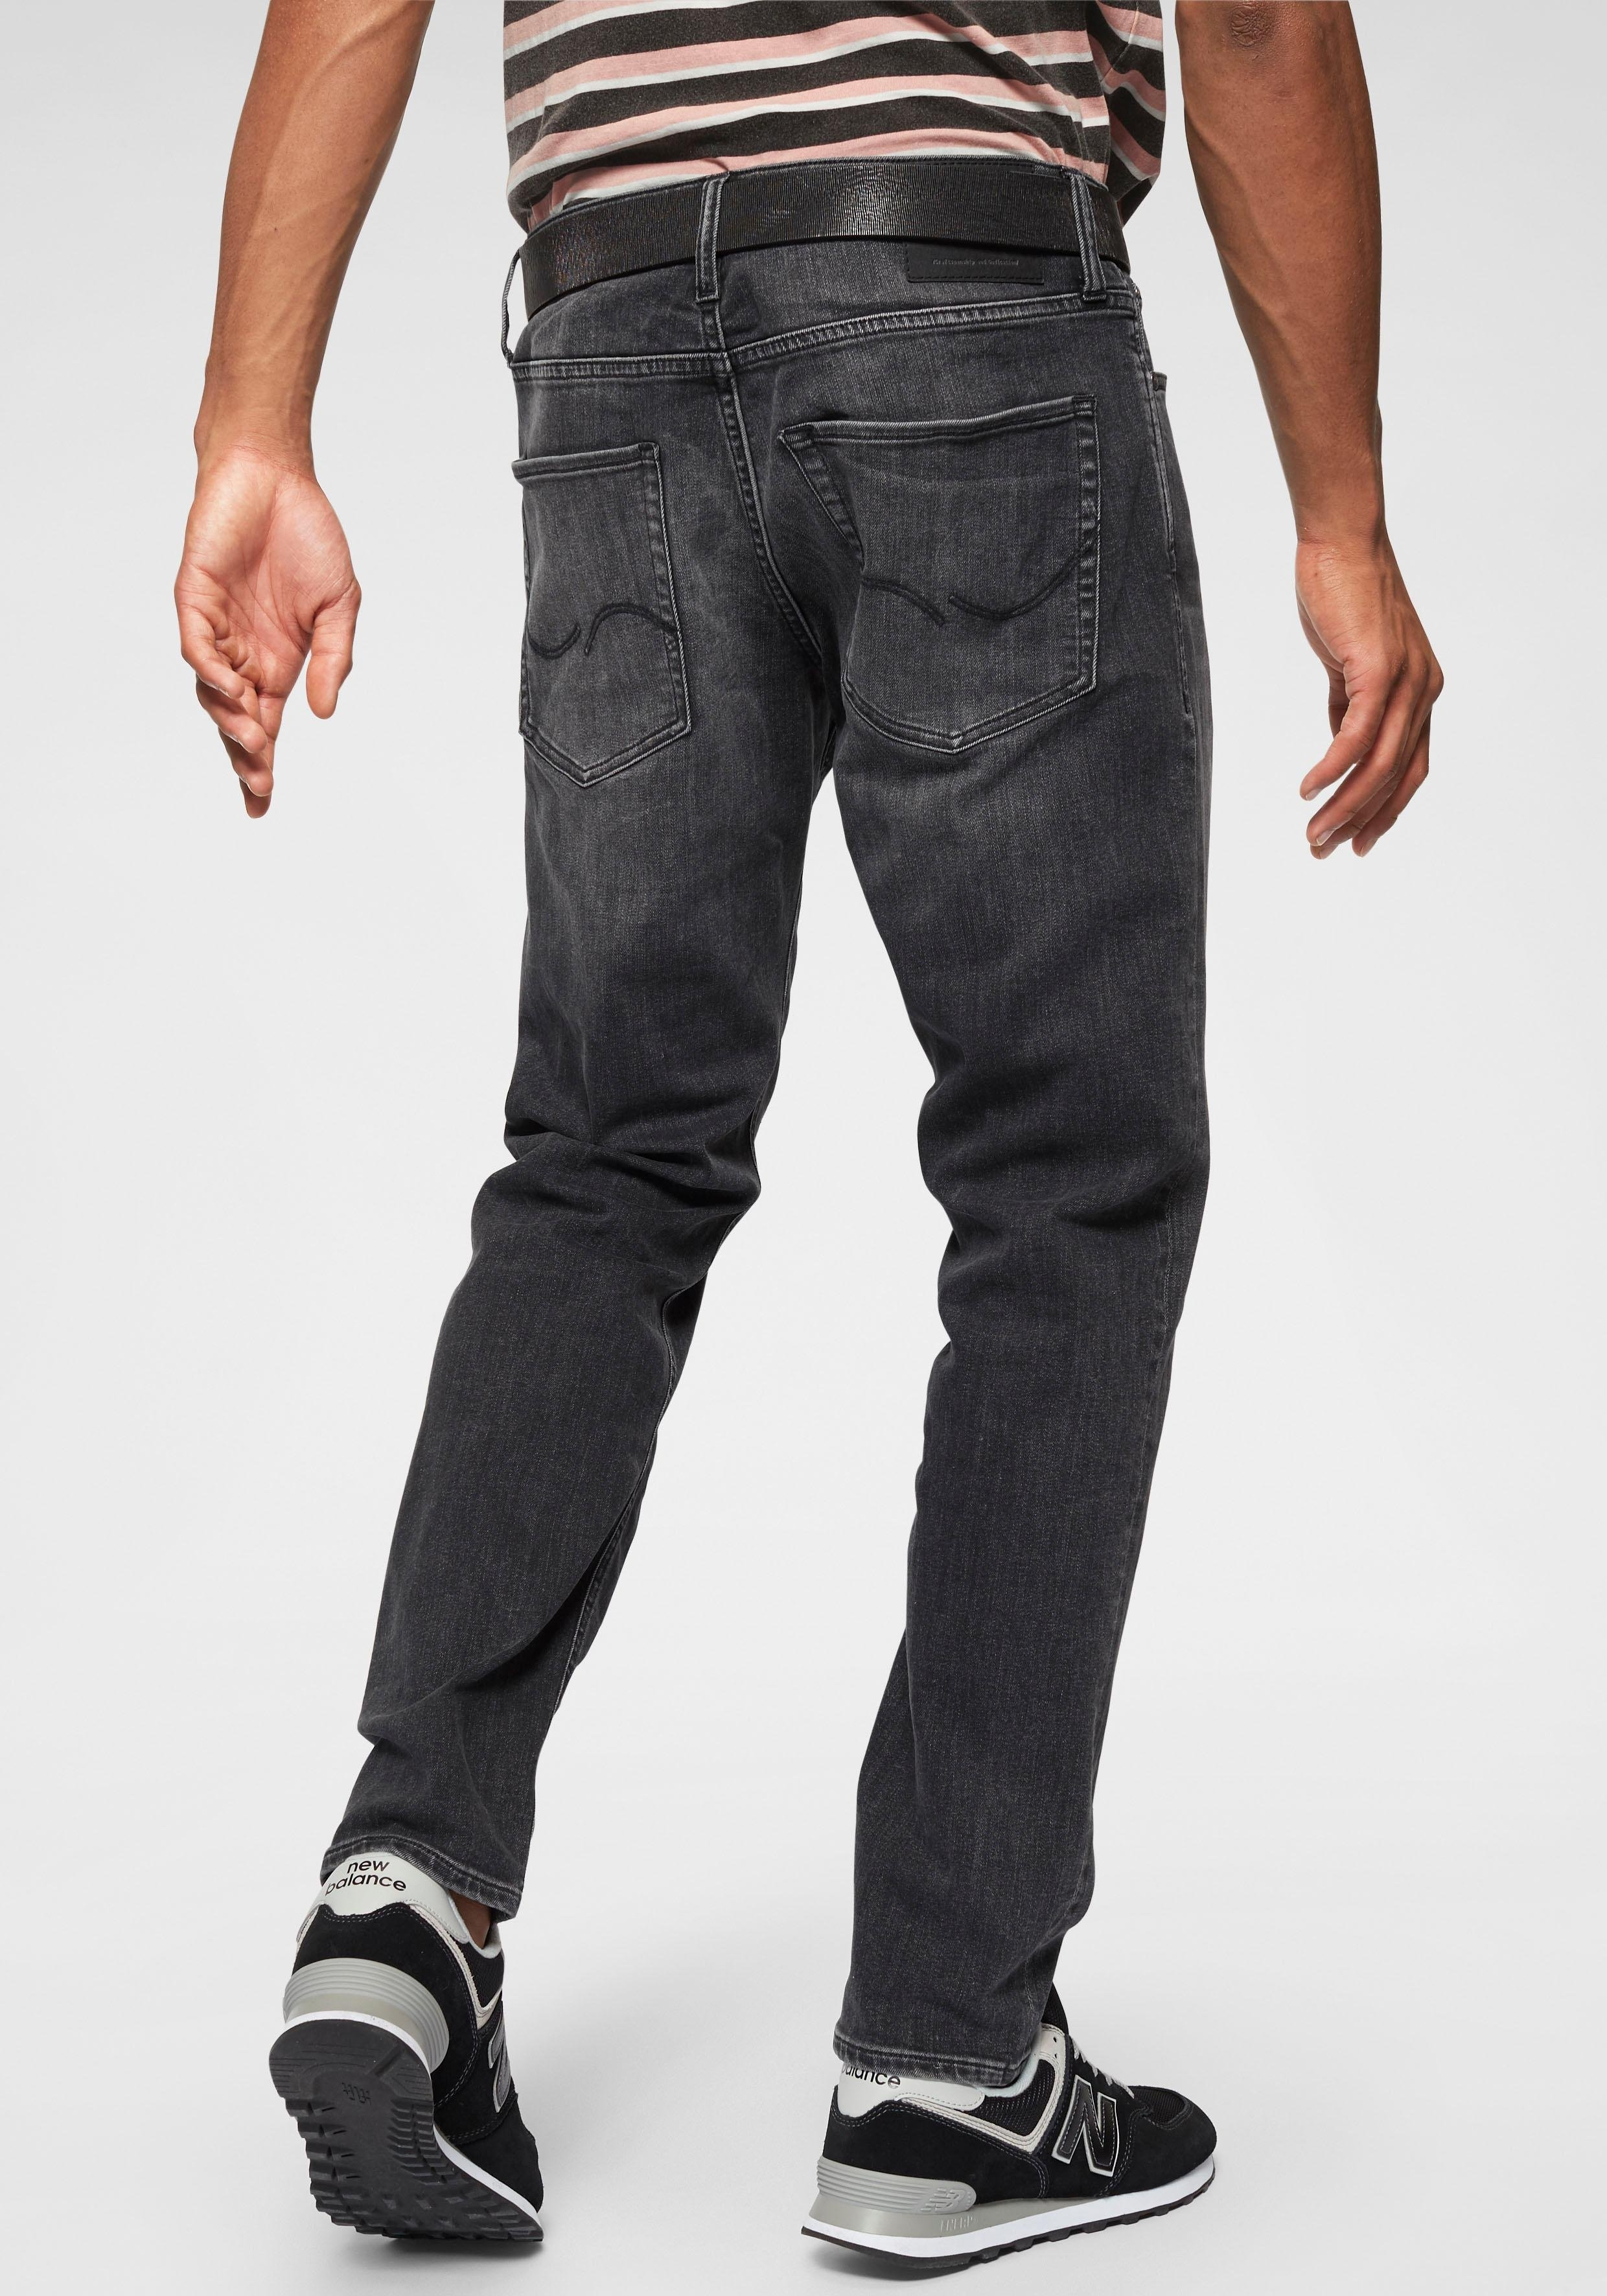 b48791d8f9a2ad ... Bruno Banani straight jeans »Hutch«, G-Star straight-jeans, Wrangler  bootcutjeans »Jacksville«